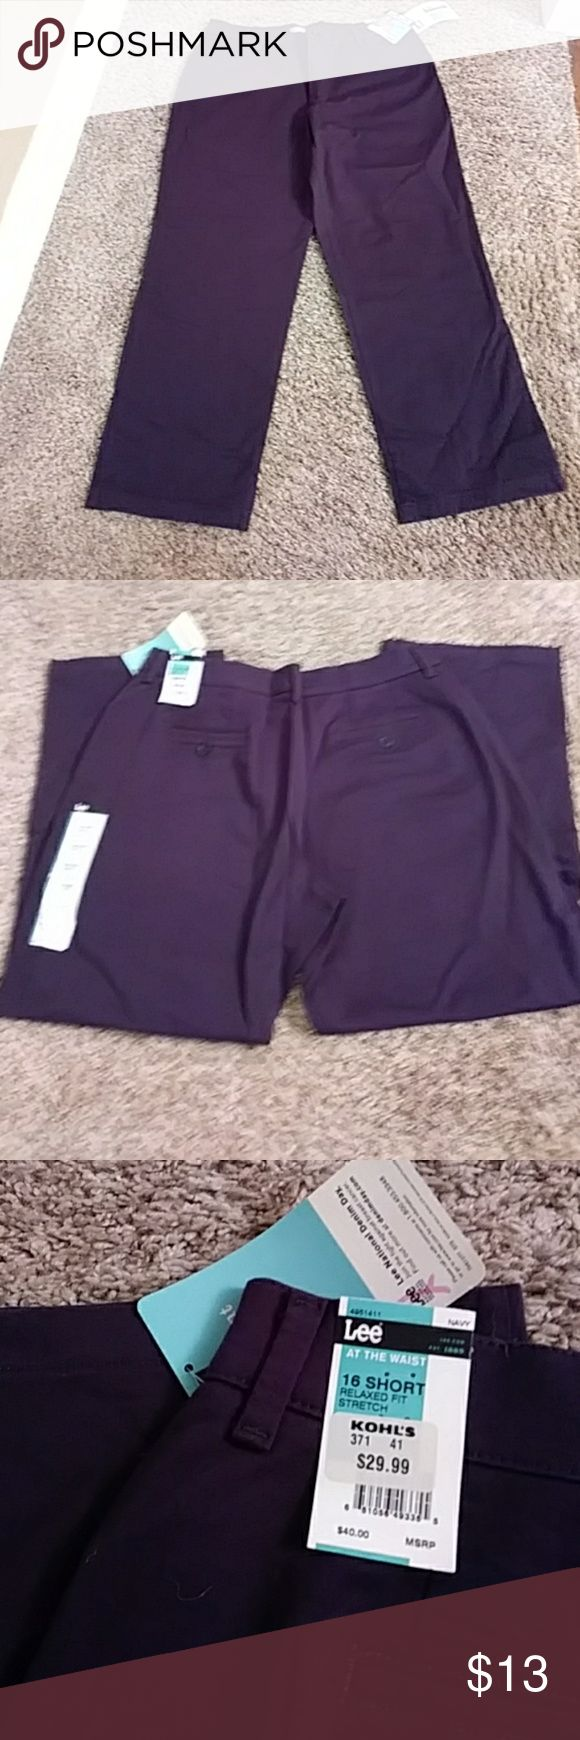 "💞Women's Pants💞 NEW LISTING!! NWT!! Purple flat front pants (not jeans).  Size 16 short.  Waist is 36"", Inseam is 28"". 🌼BUNDLE 2 or more for FREE SHIPPING!!🌼 Lee Pants Wide Leg"